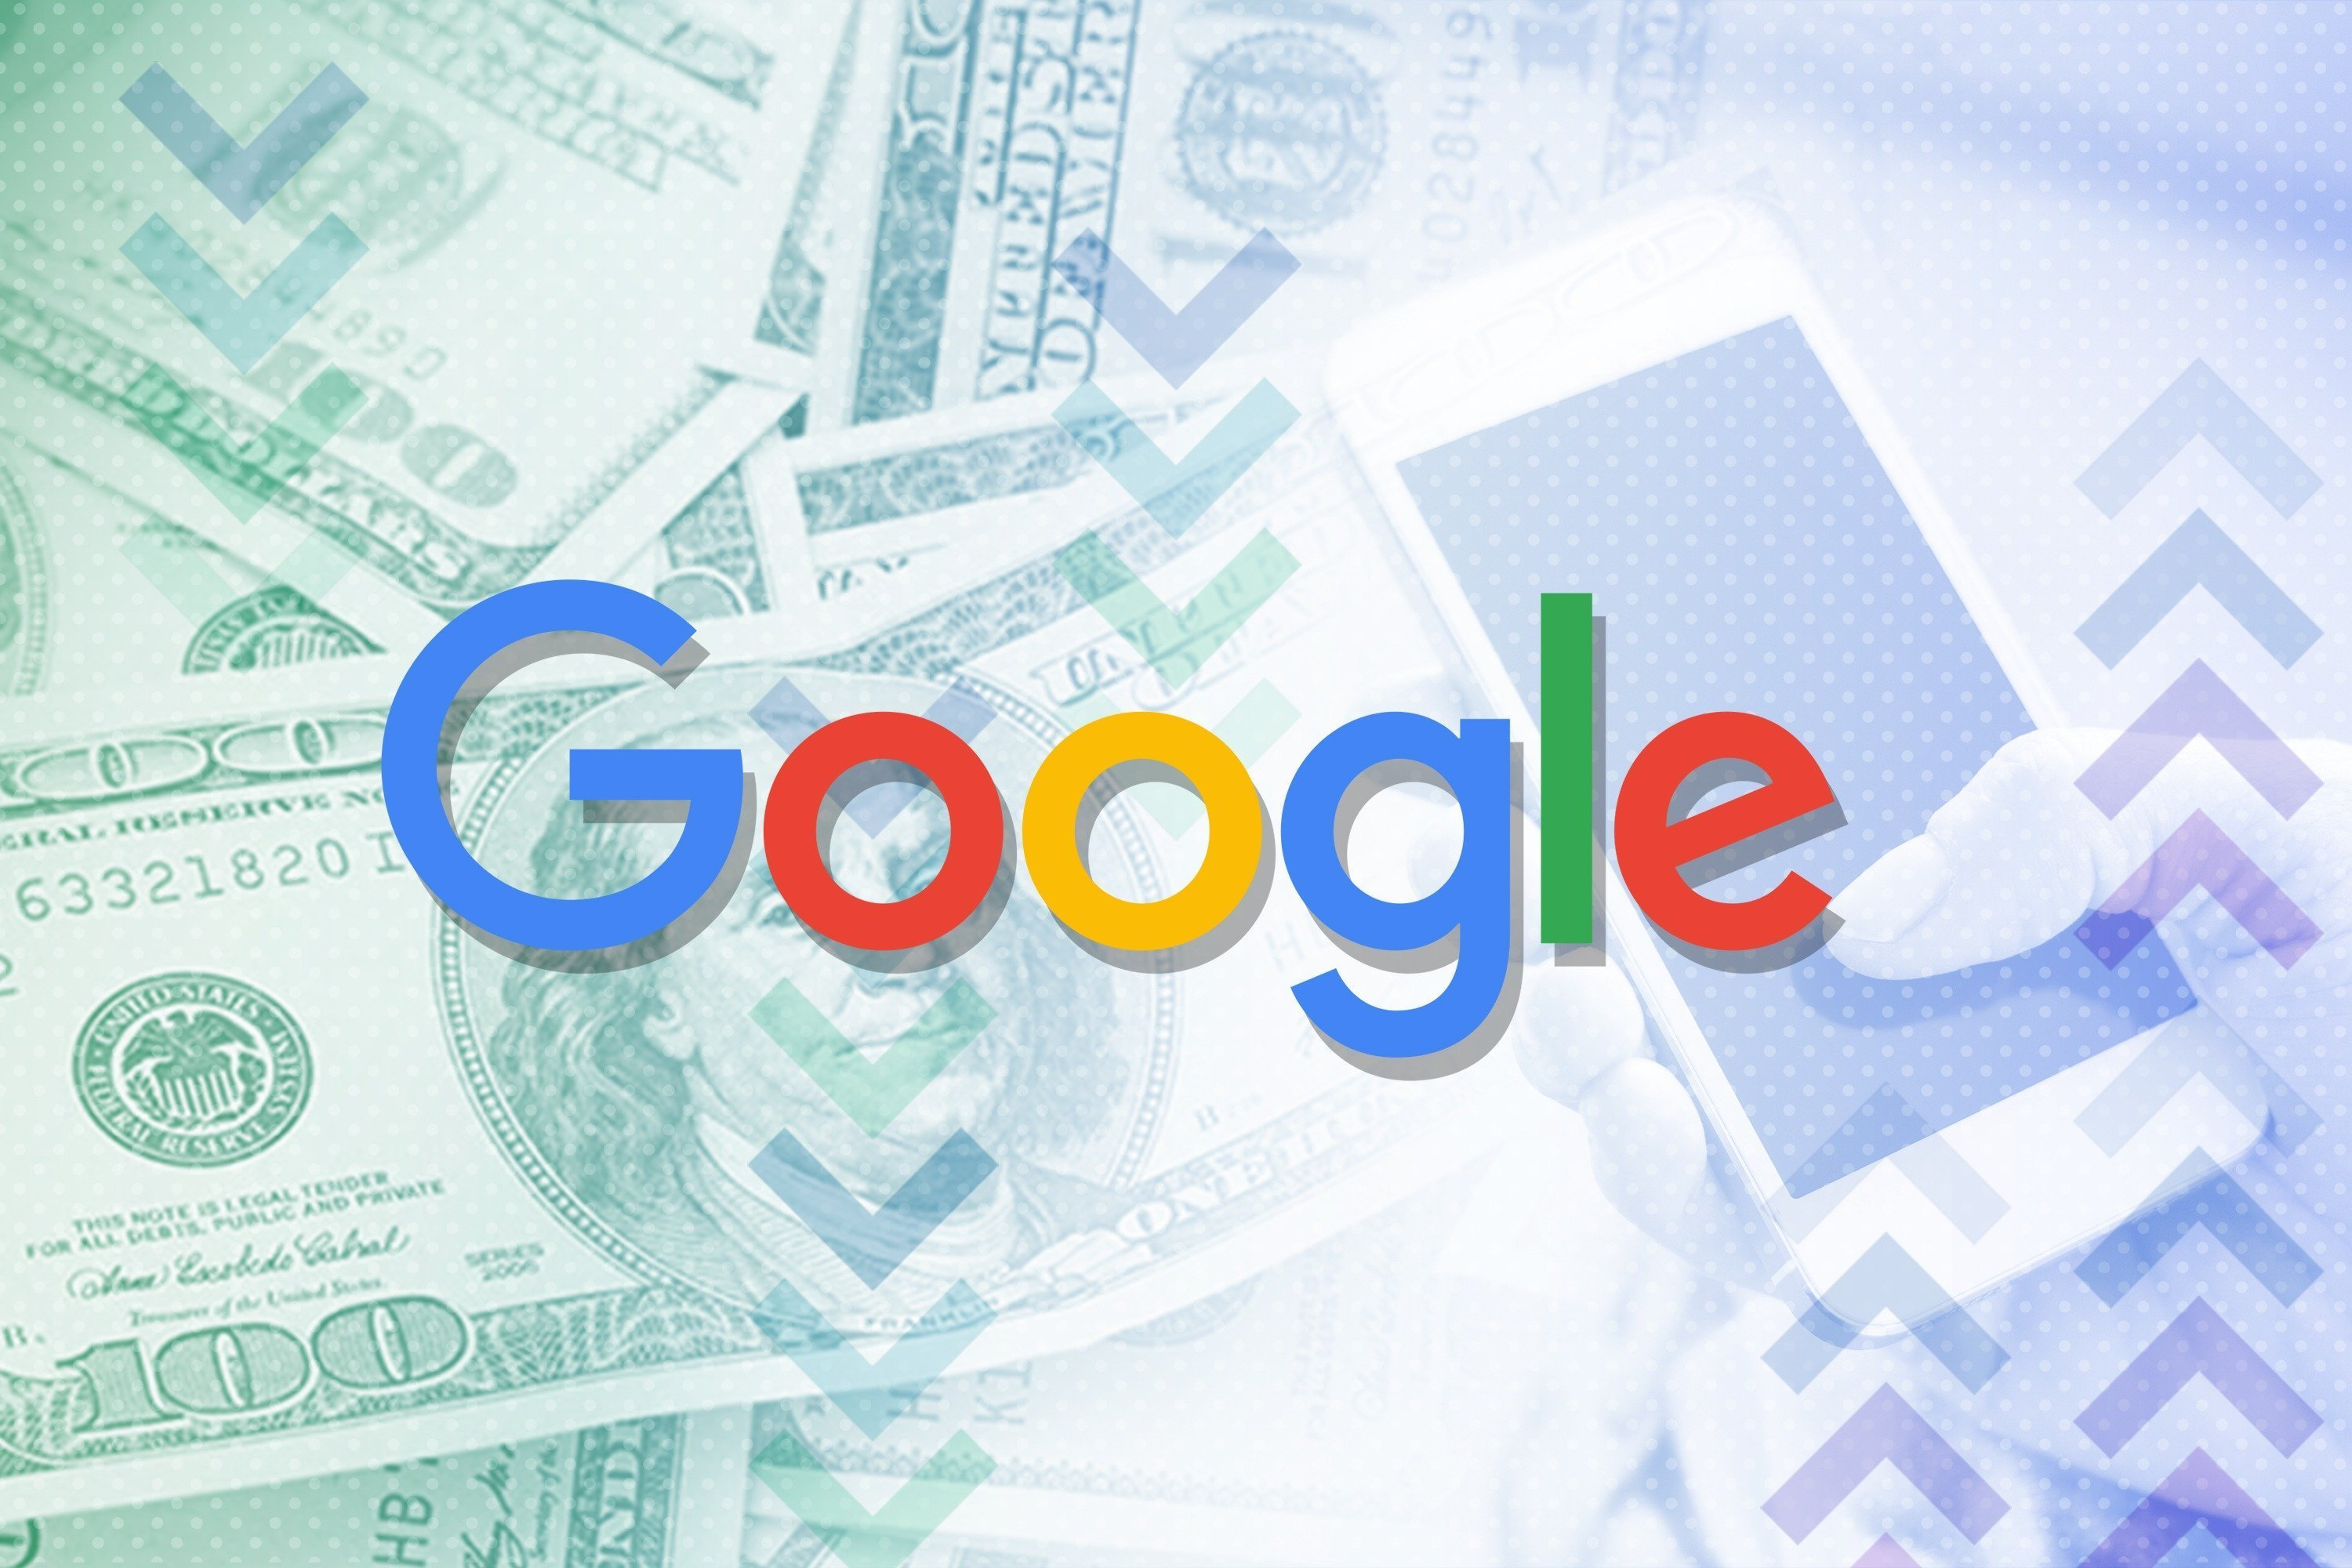 Google is going on a U.S. hiring spree, increasing its footprint outside of Silicon Valley. (Source: Shutterstock/CNNMoney)